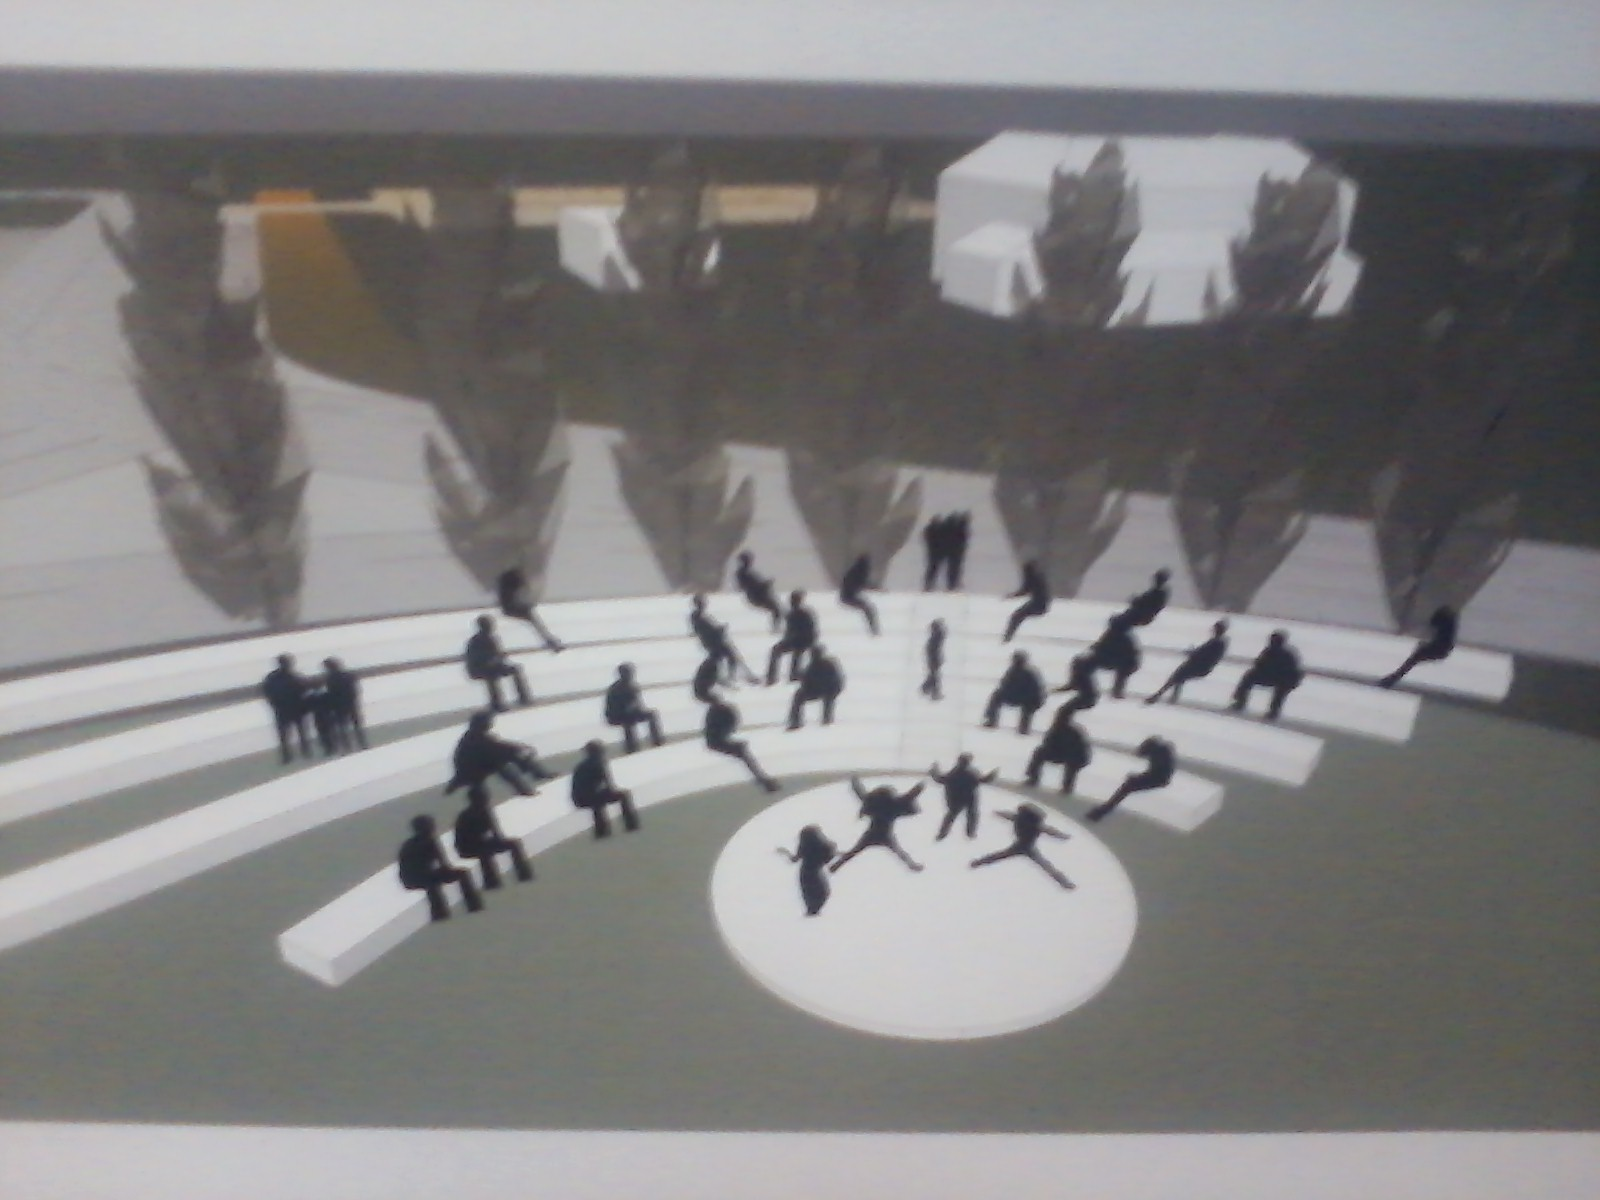 Plans in Motion for Construction of Amphitheater